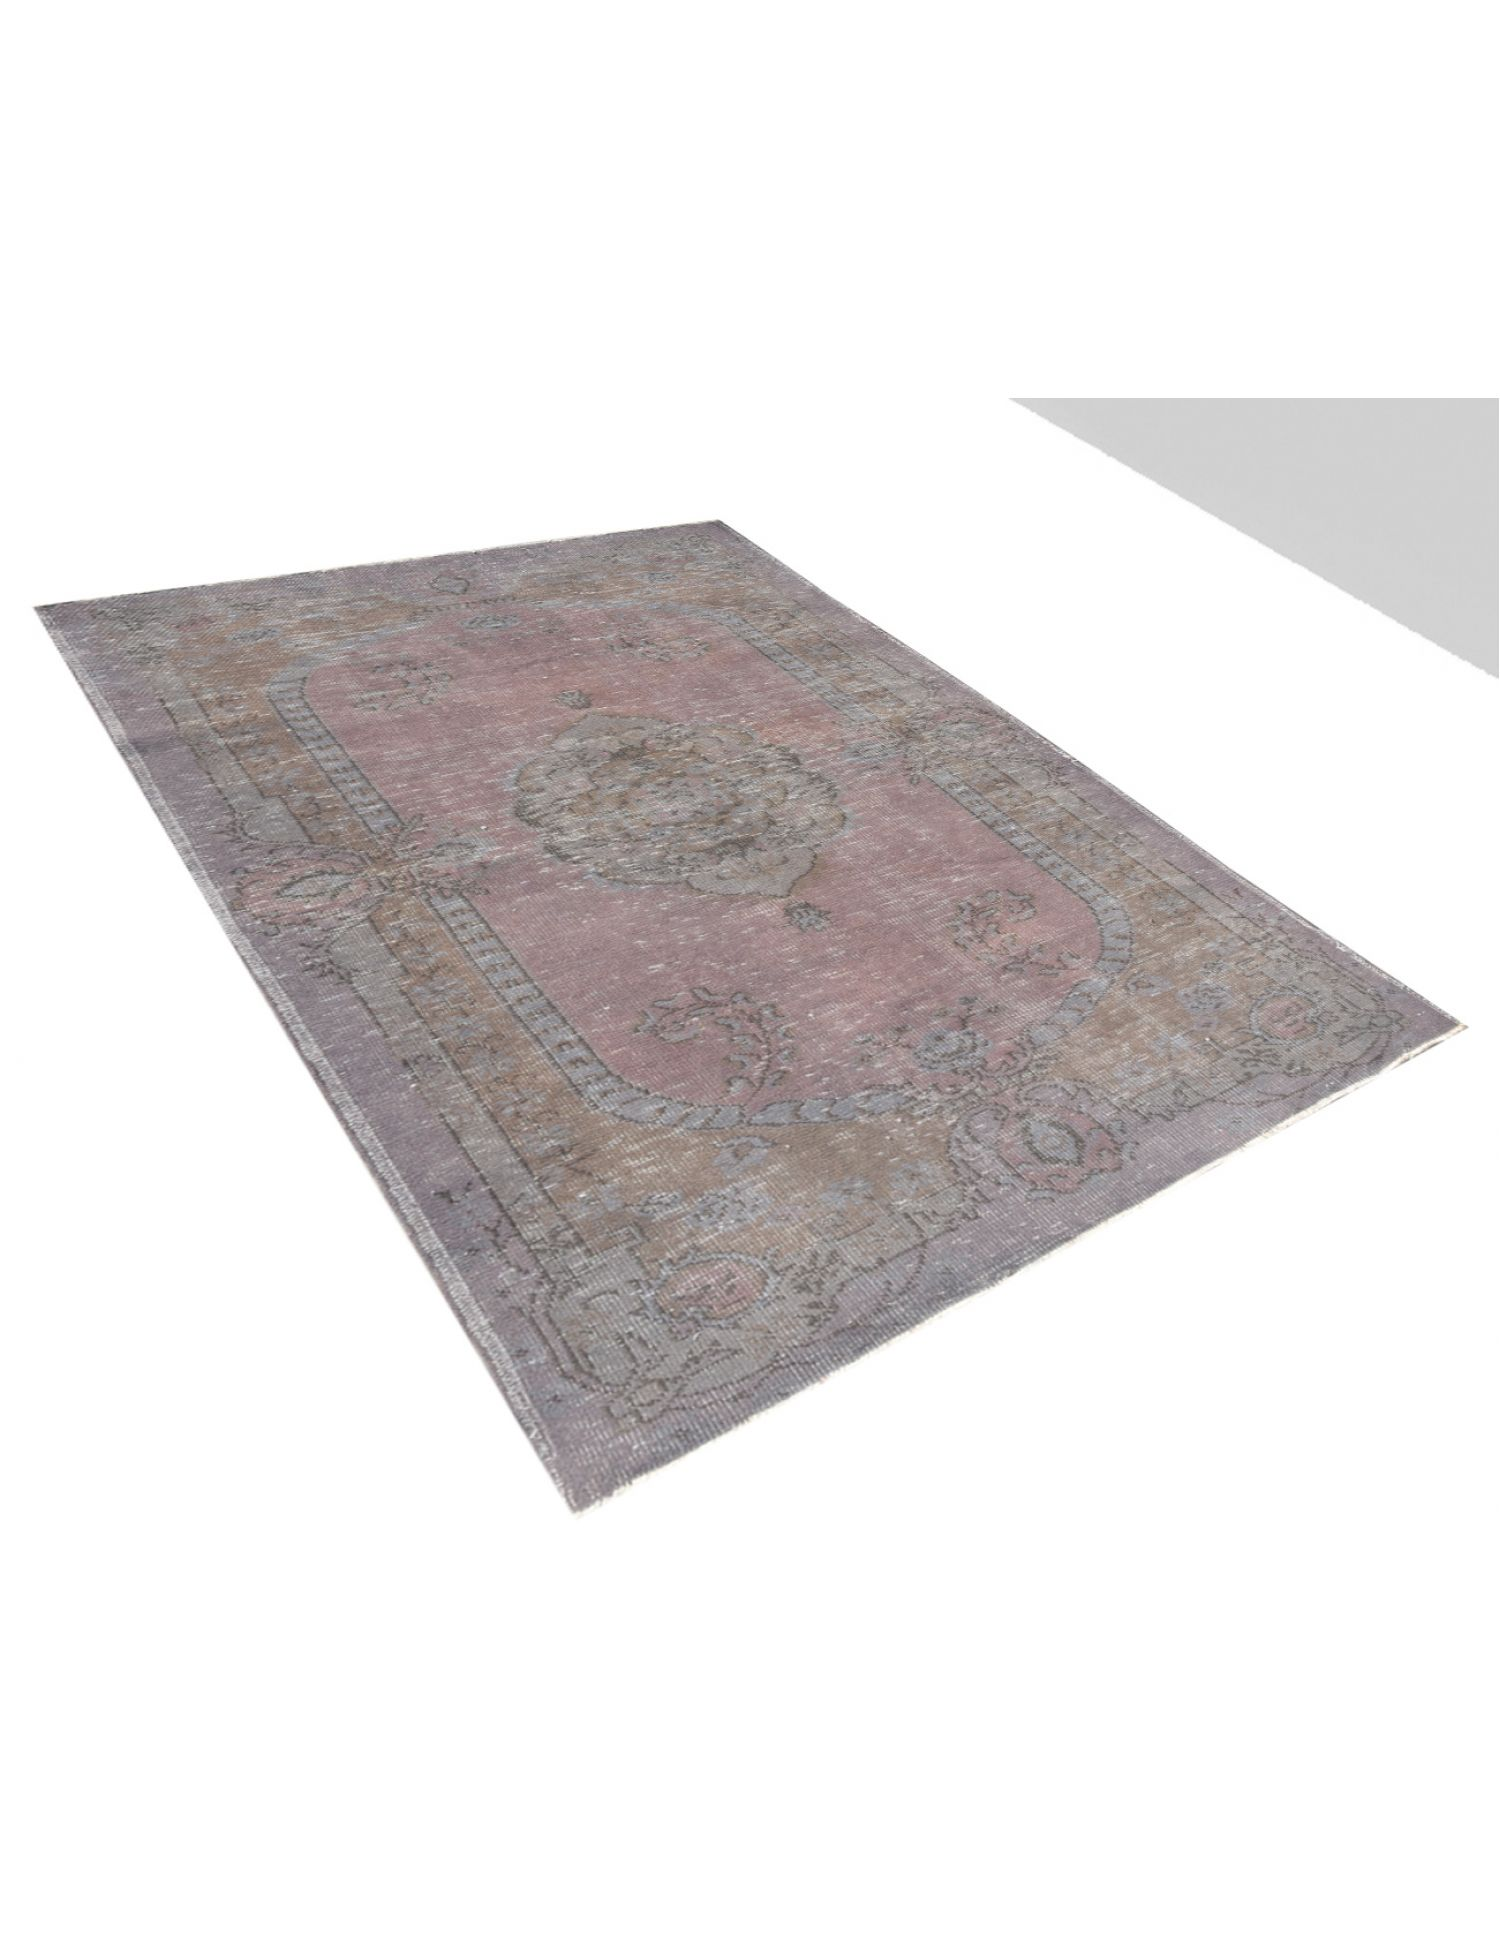 Vintage Carpet  grey <br/>238 x 138 cm